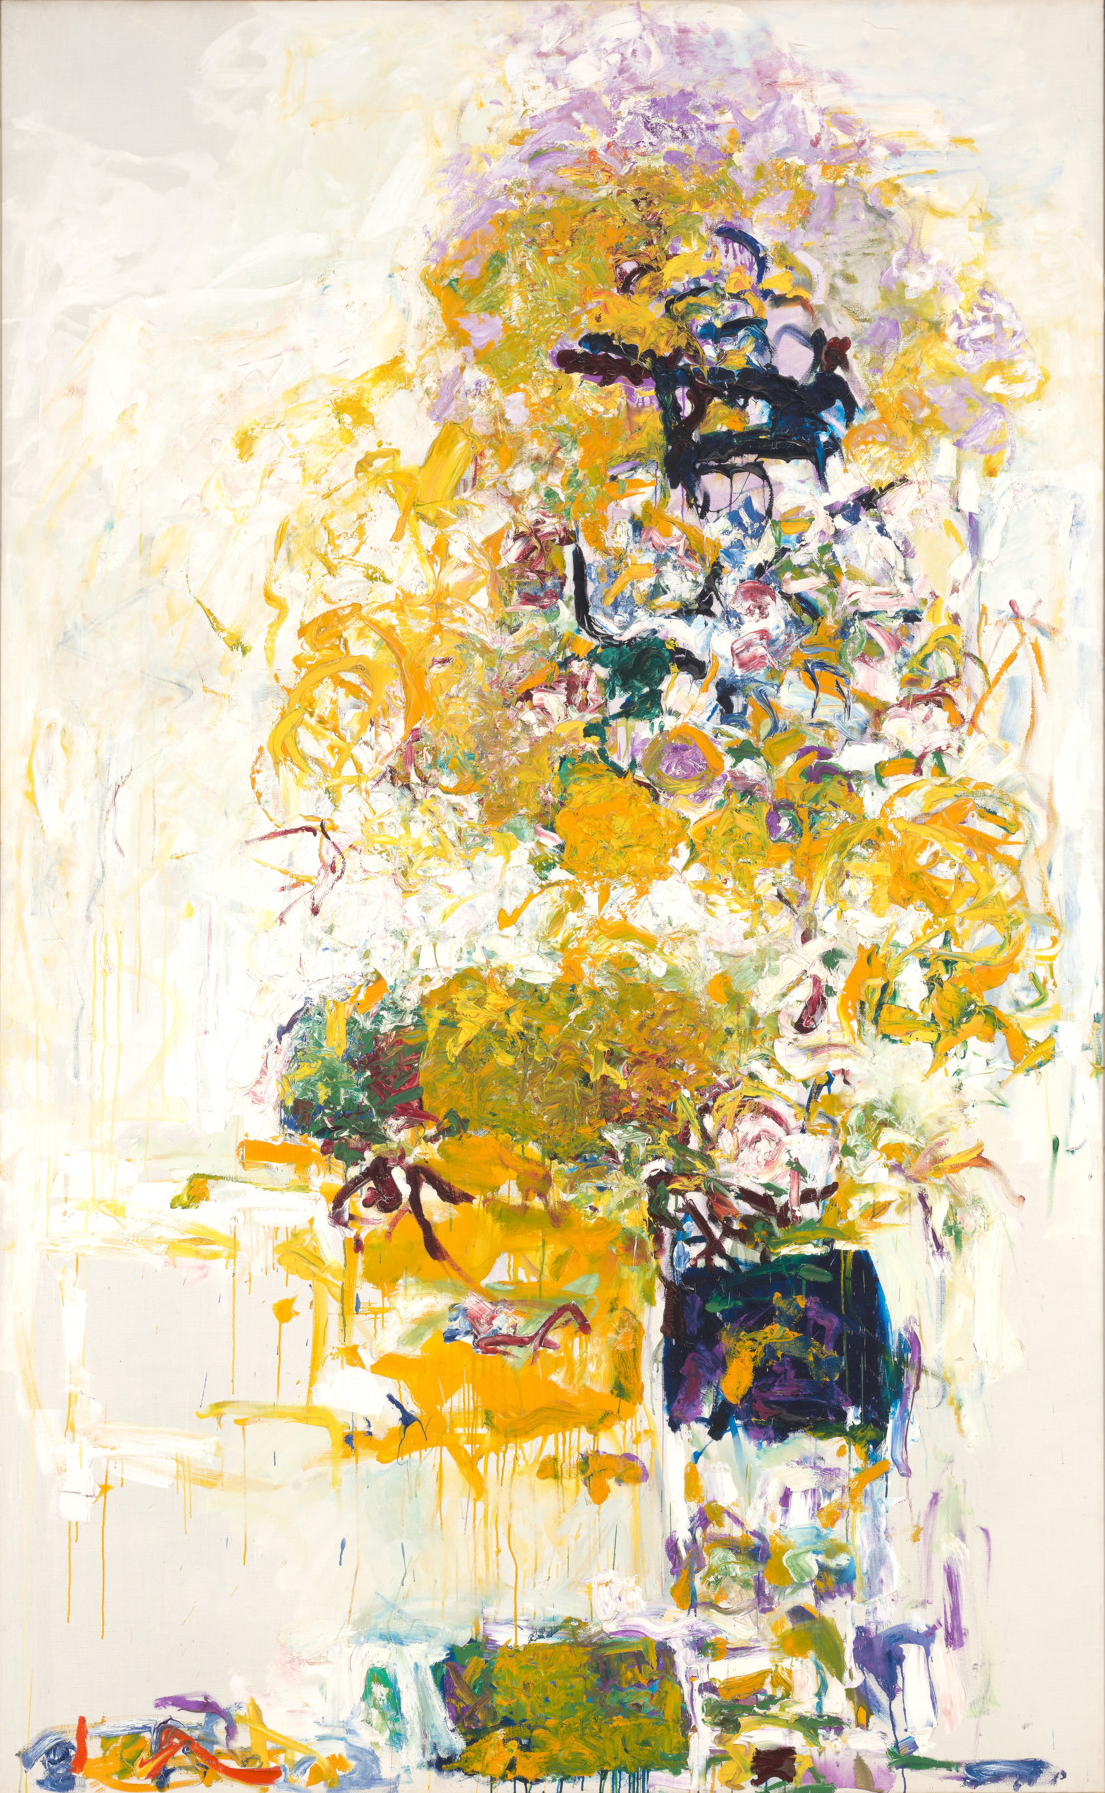 Joan Mitchell (American, 1925-1992) Sunflower VI 1969. Oil on canvas, 102 1/4 x 63 1/4 in. Anonymous gift, in tribute to Linda Shearer and her late husband Hartley Shearer, M.2012.19